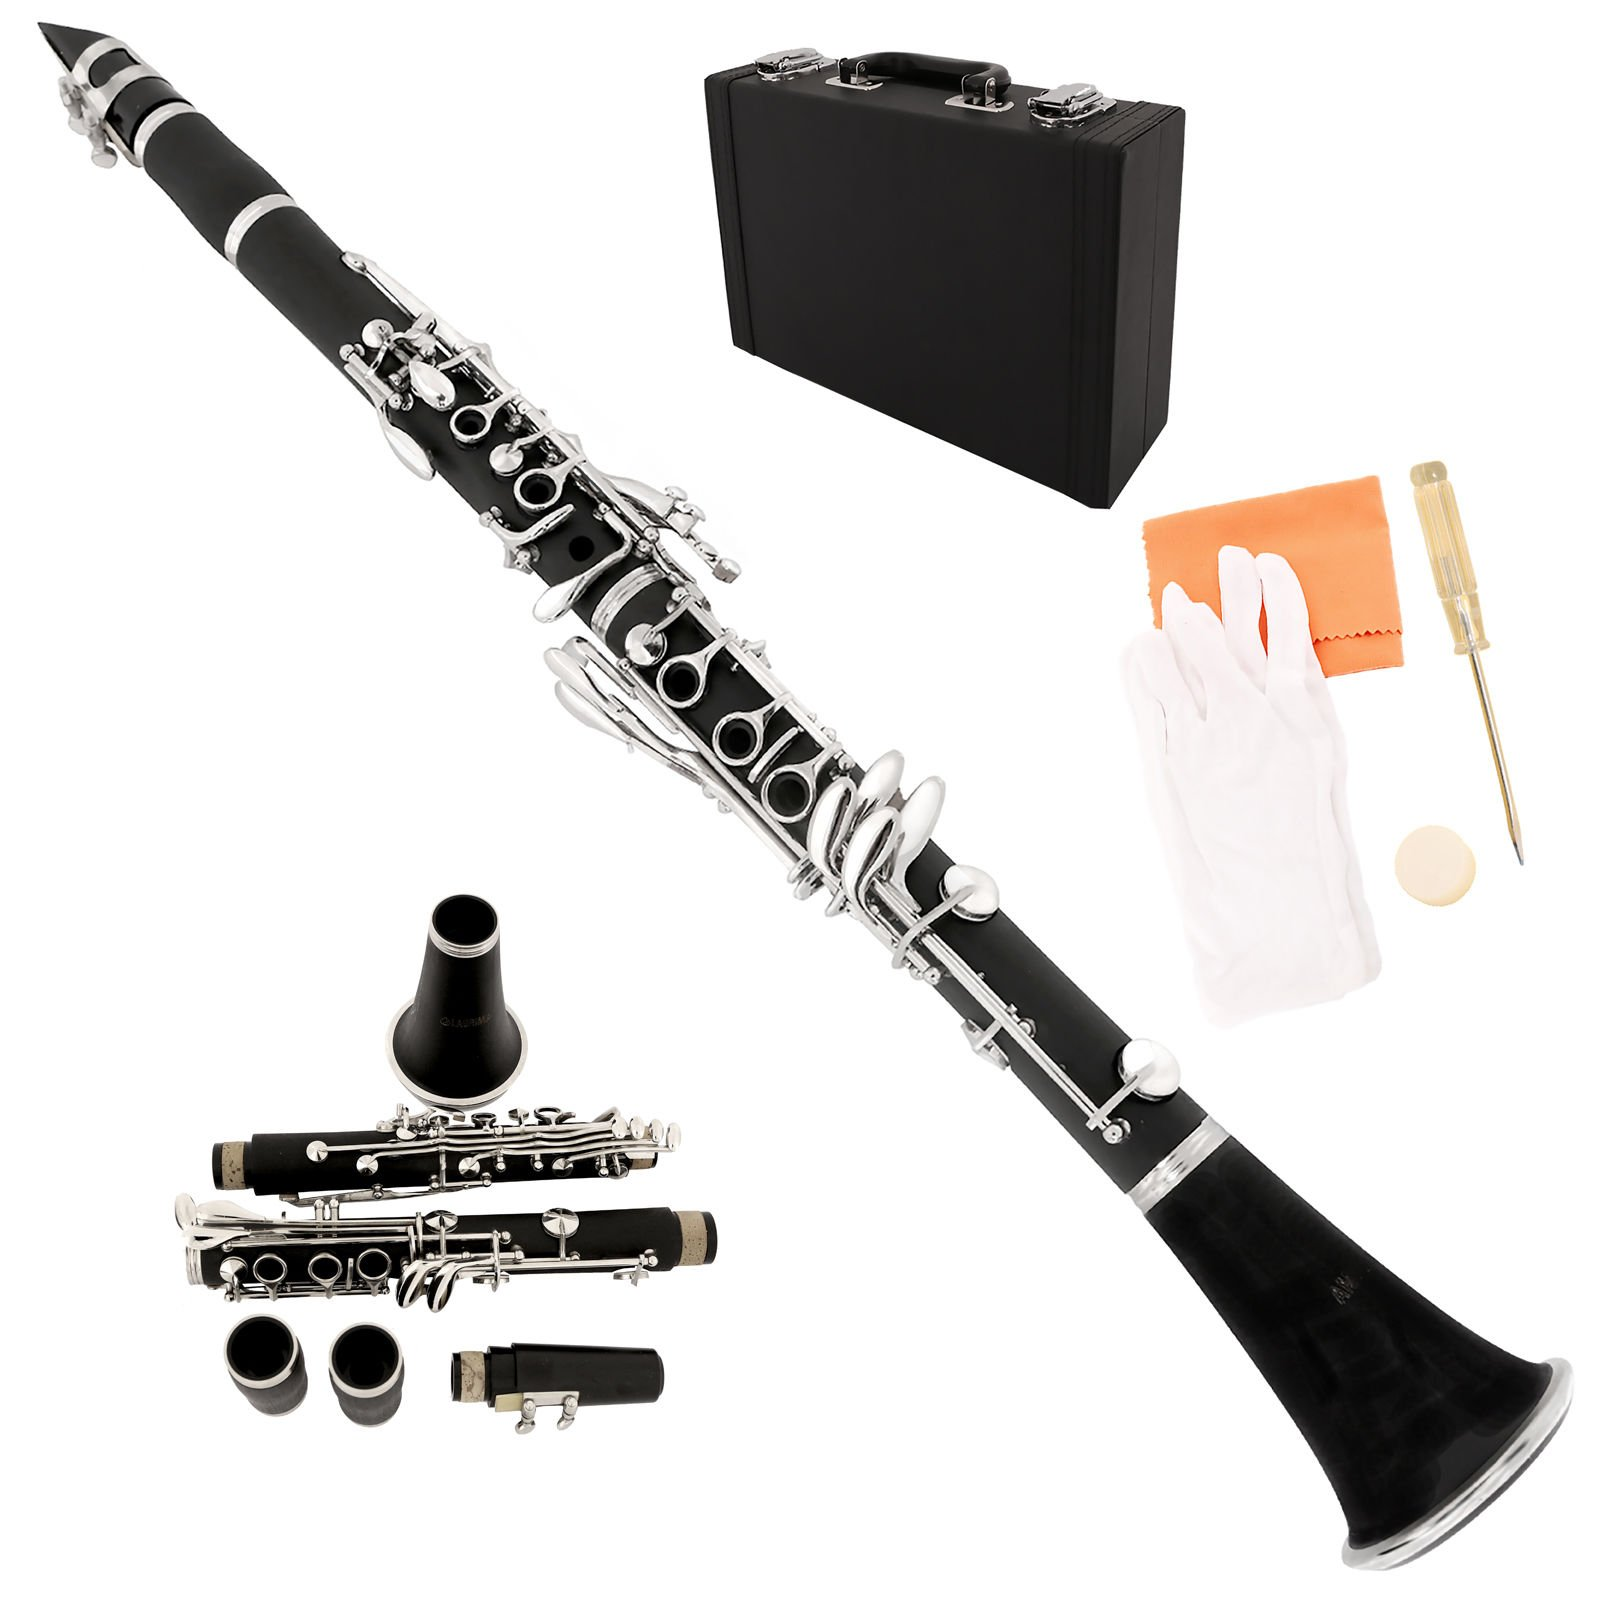 LAGRIMA Bb Flat Clarinet for students, with Case, 11 Reeds, Mouthpiece,Care Kit,Black Sliver Keys for Beginner/Adult